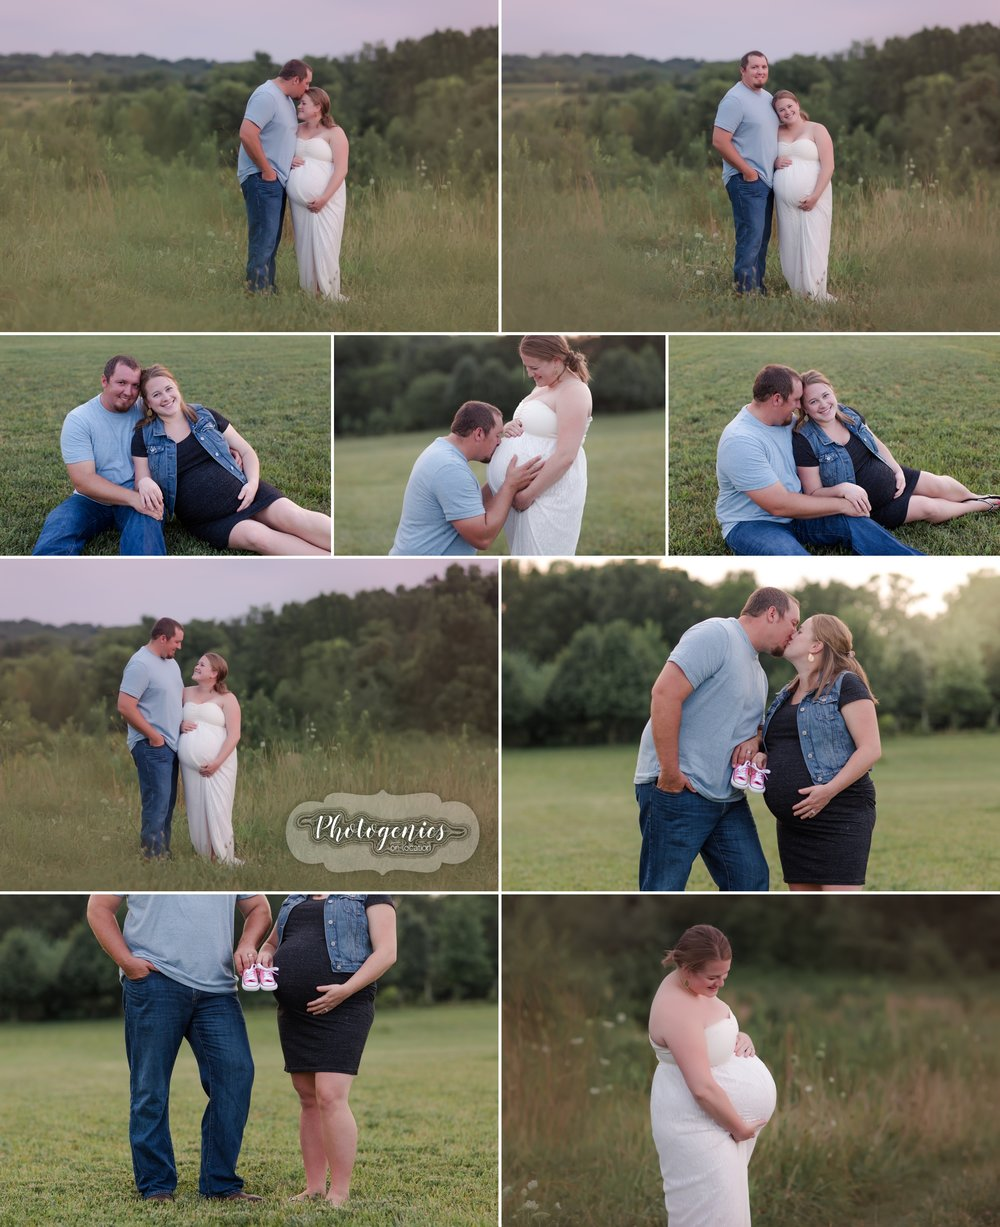 maternity_session_photography_gown_rustic_nature_background_with_husband_ideas_poses_simple 2